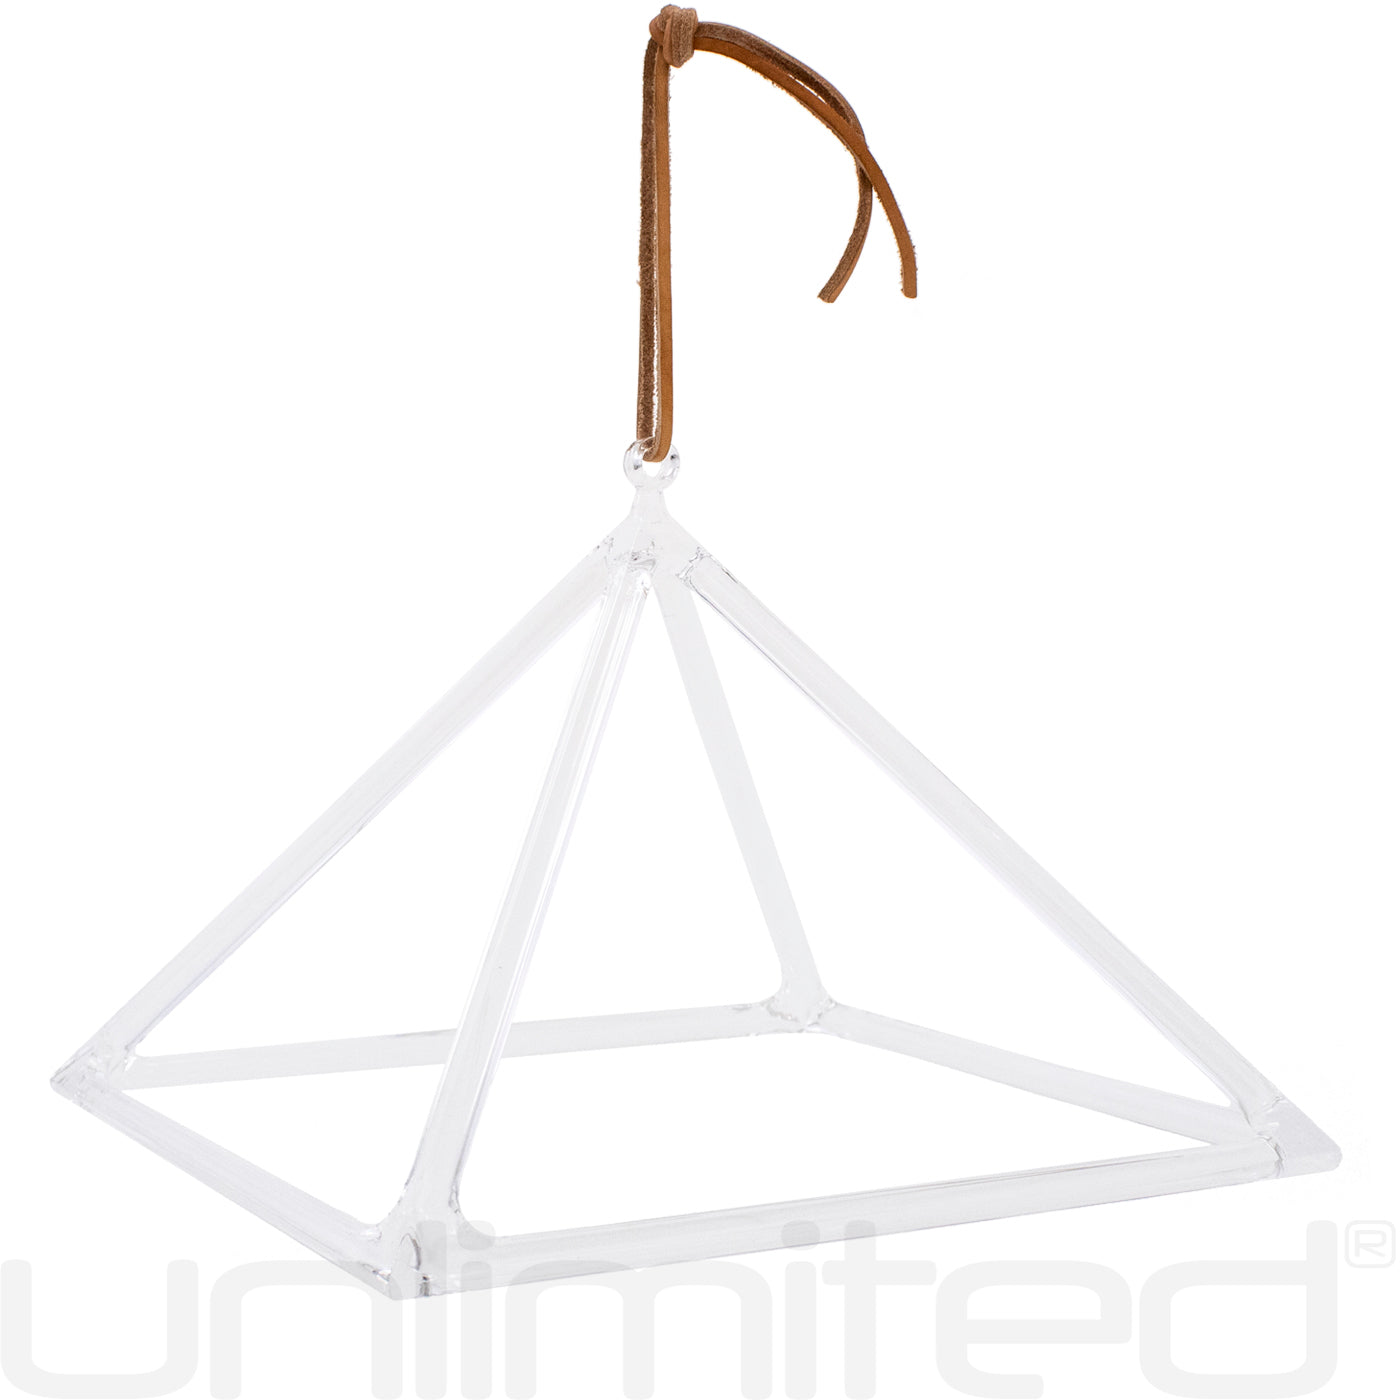 Sound Healing Instruments - Gongs Unlimited